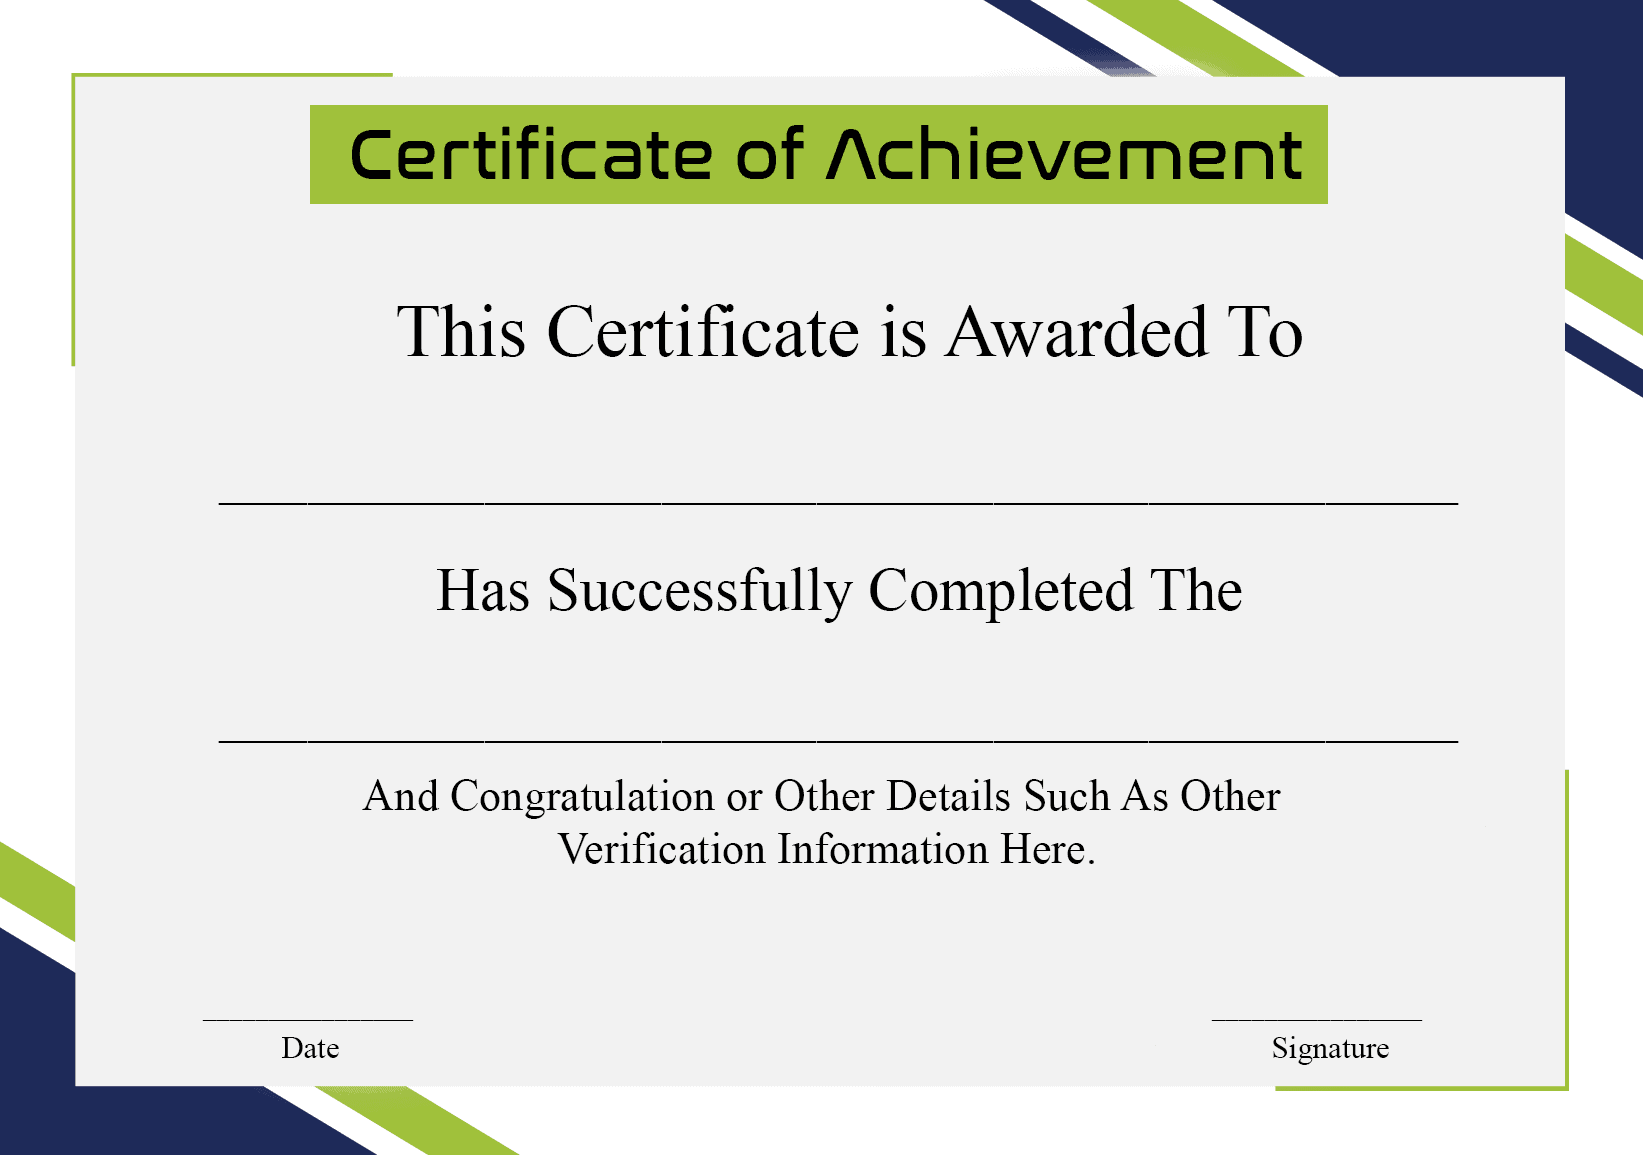 Certificate of Achievement For College